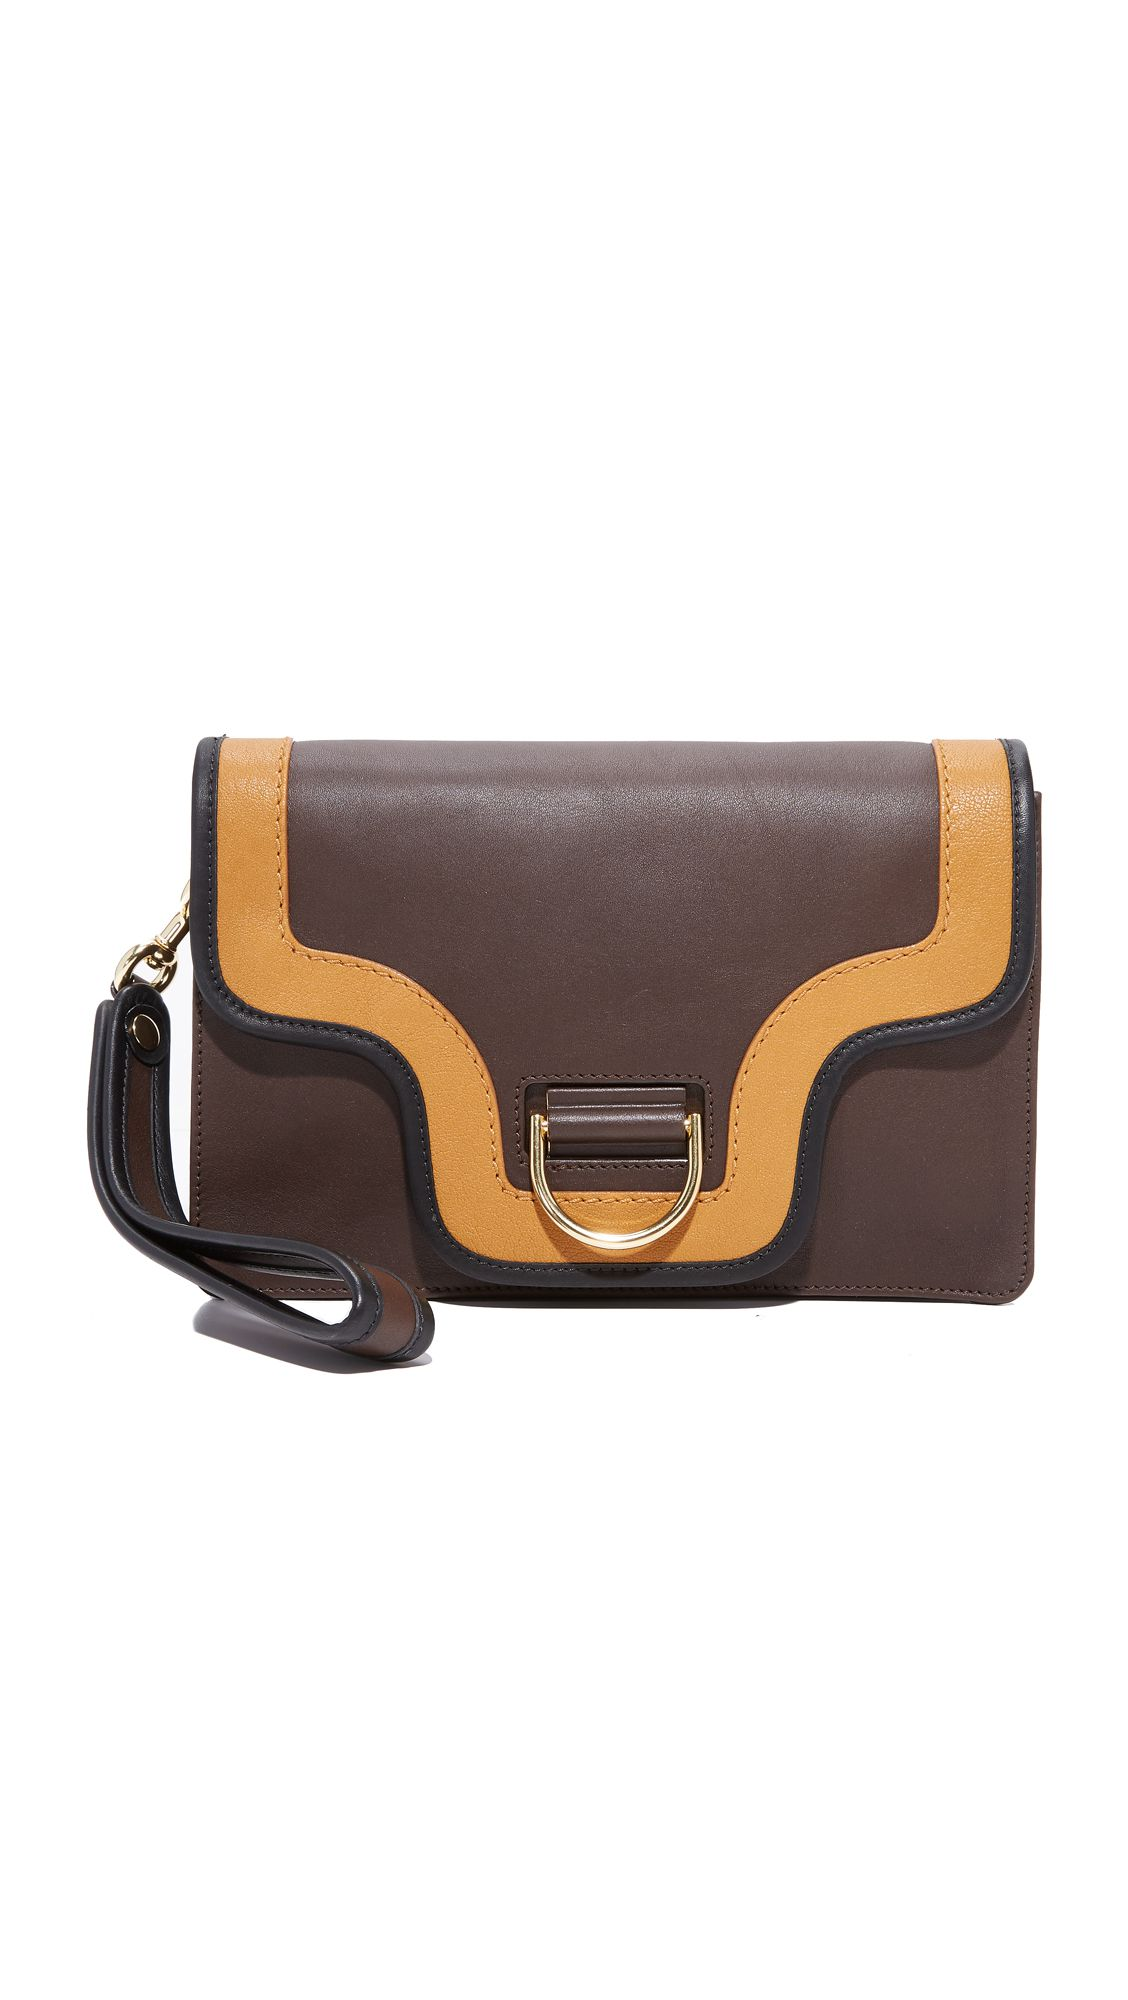 A Marc Jacobs brown and tan clutch